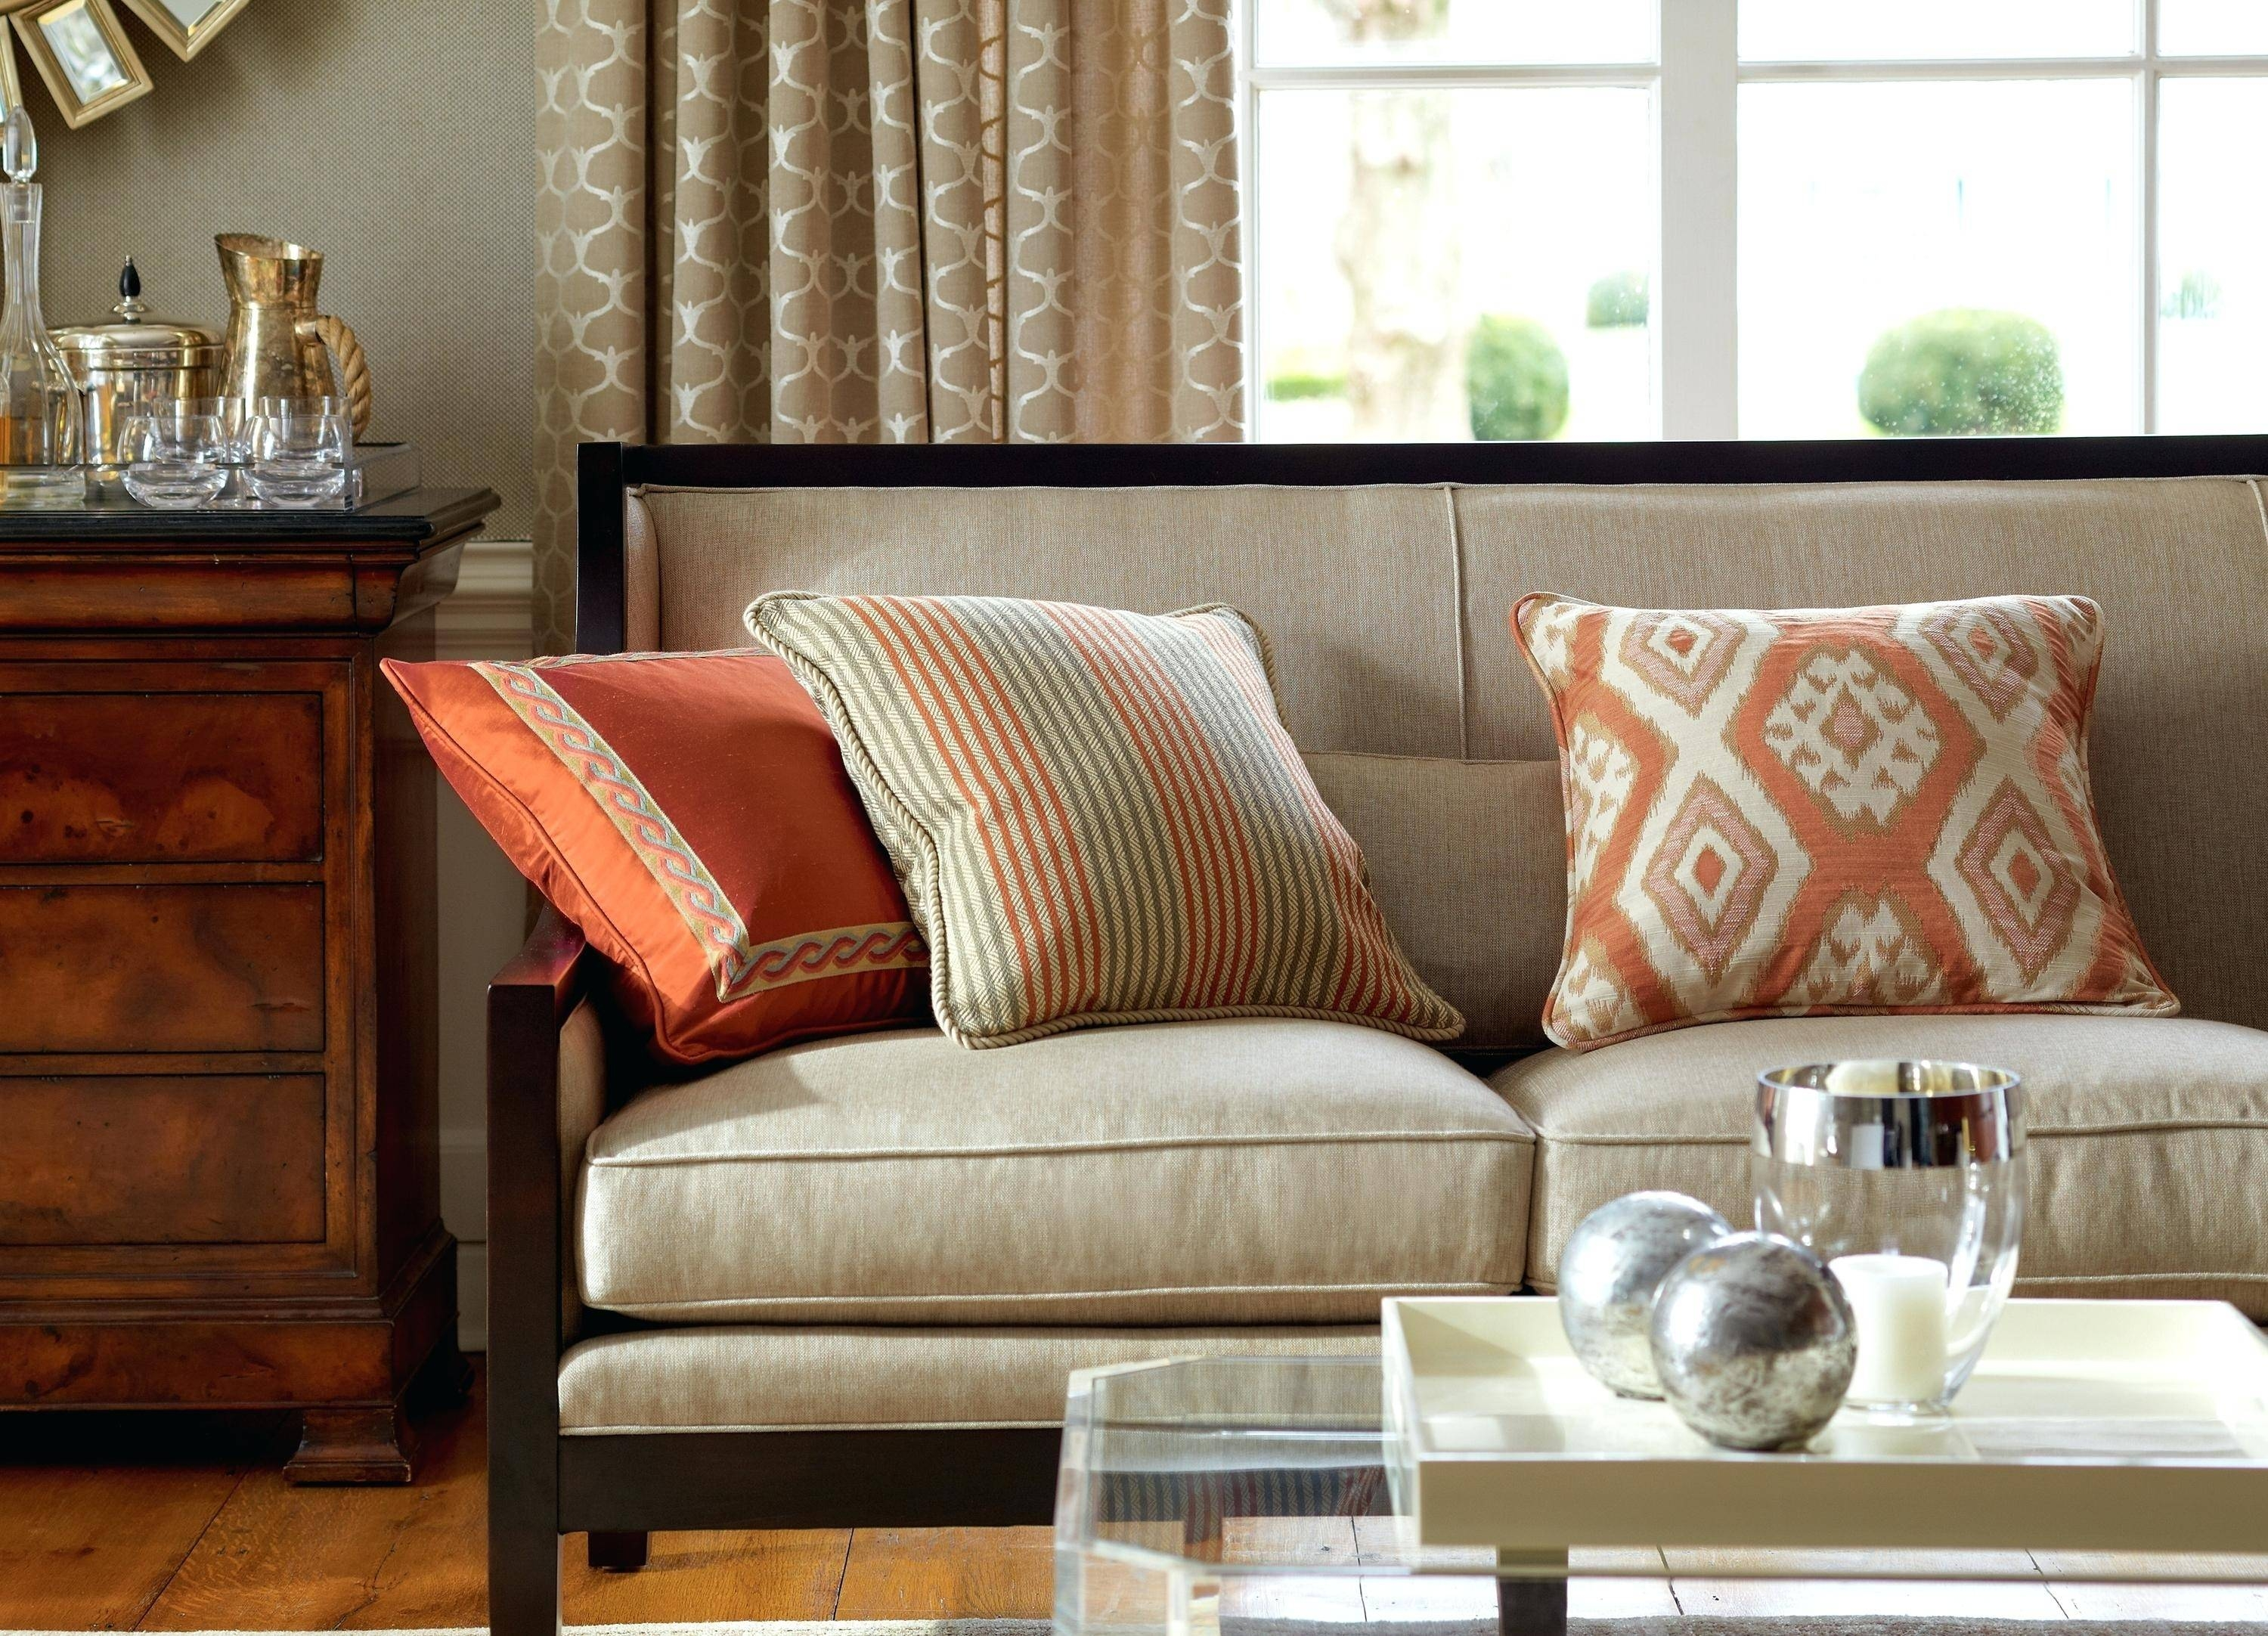 Pillows : Oversized Pillows For Couch Within Large Couch Pillows For Oversized Sofa Pillows (View 21 of 30)